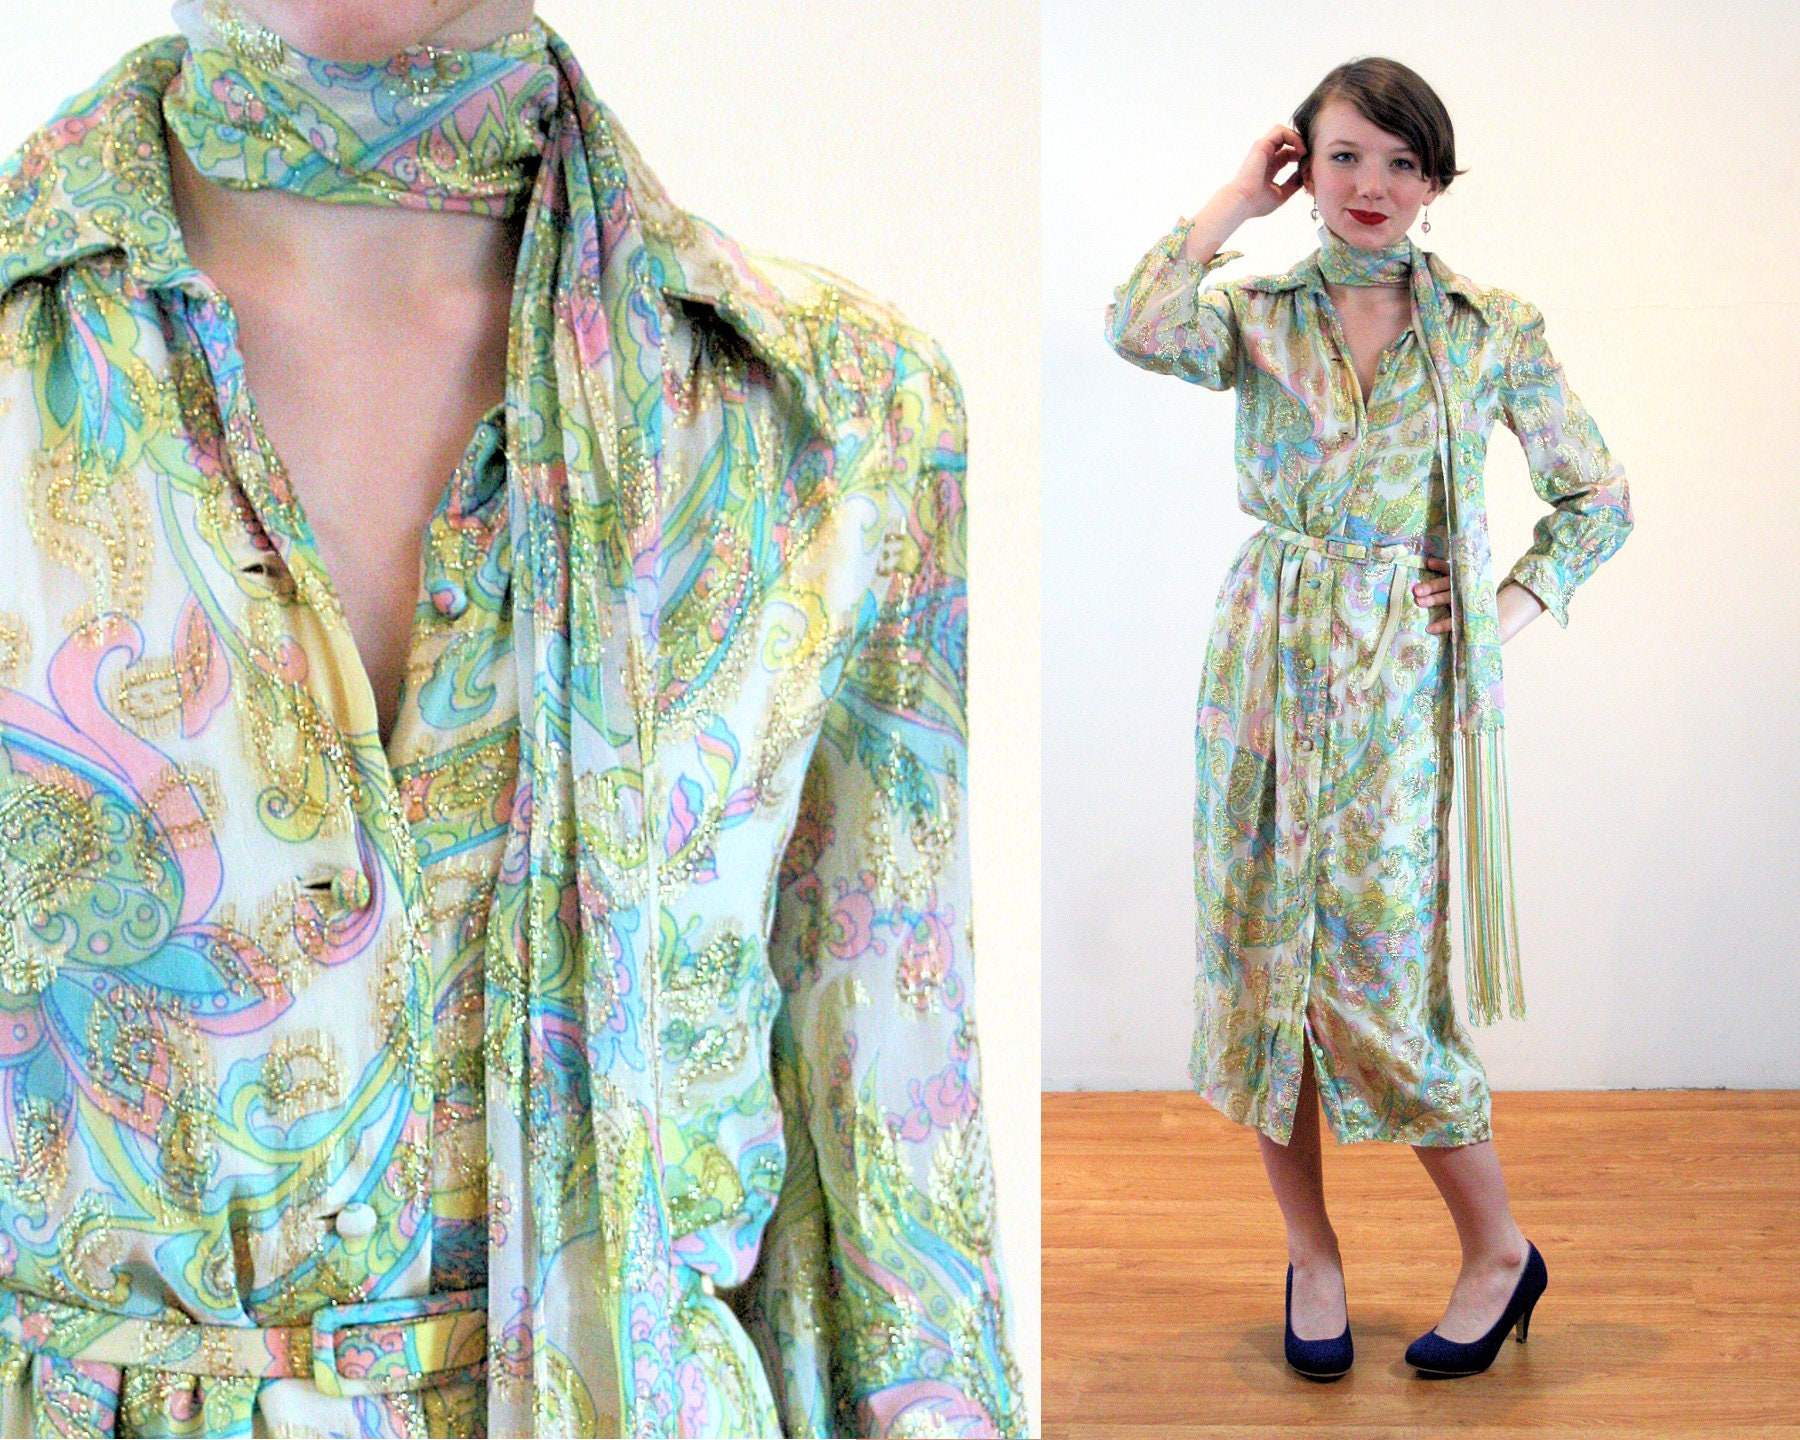 Vintage Scarf Styles -1920s to 1960s 60S Nat Kaplan Metallic Dress Xs, Mod Vintage Gold Floral Psychedelic Couture Belted Midi With Matching Scarf, Extra Small $58.00 AT vintagedancer.com